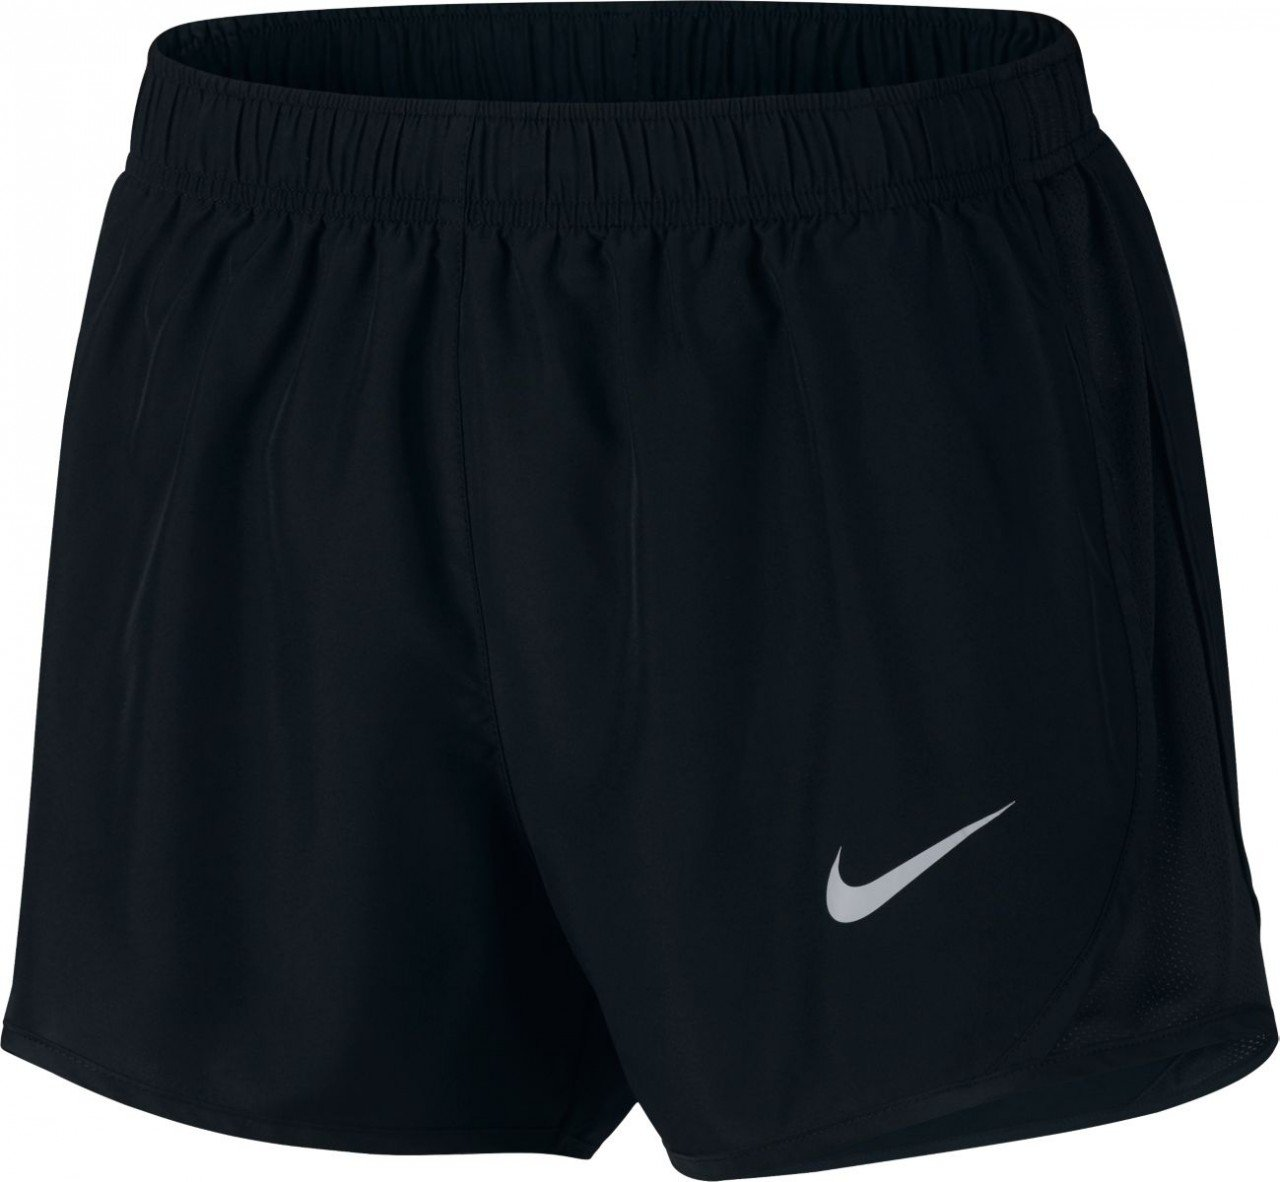 Nike Womens Tempo Fitness Running Shorts Black S by Nike